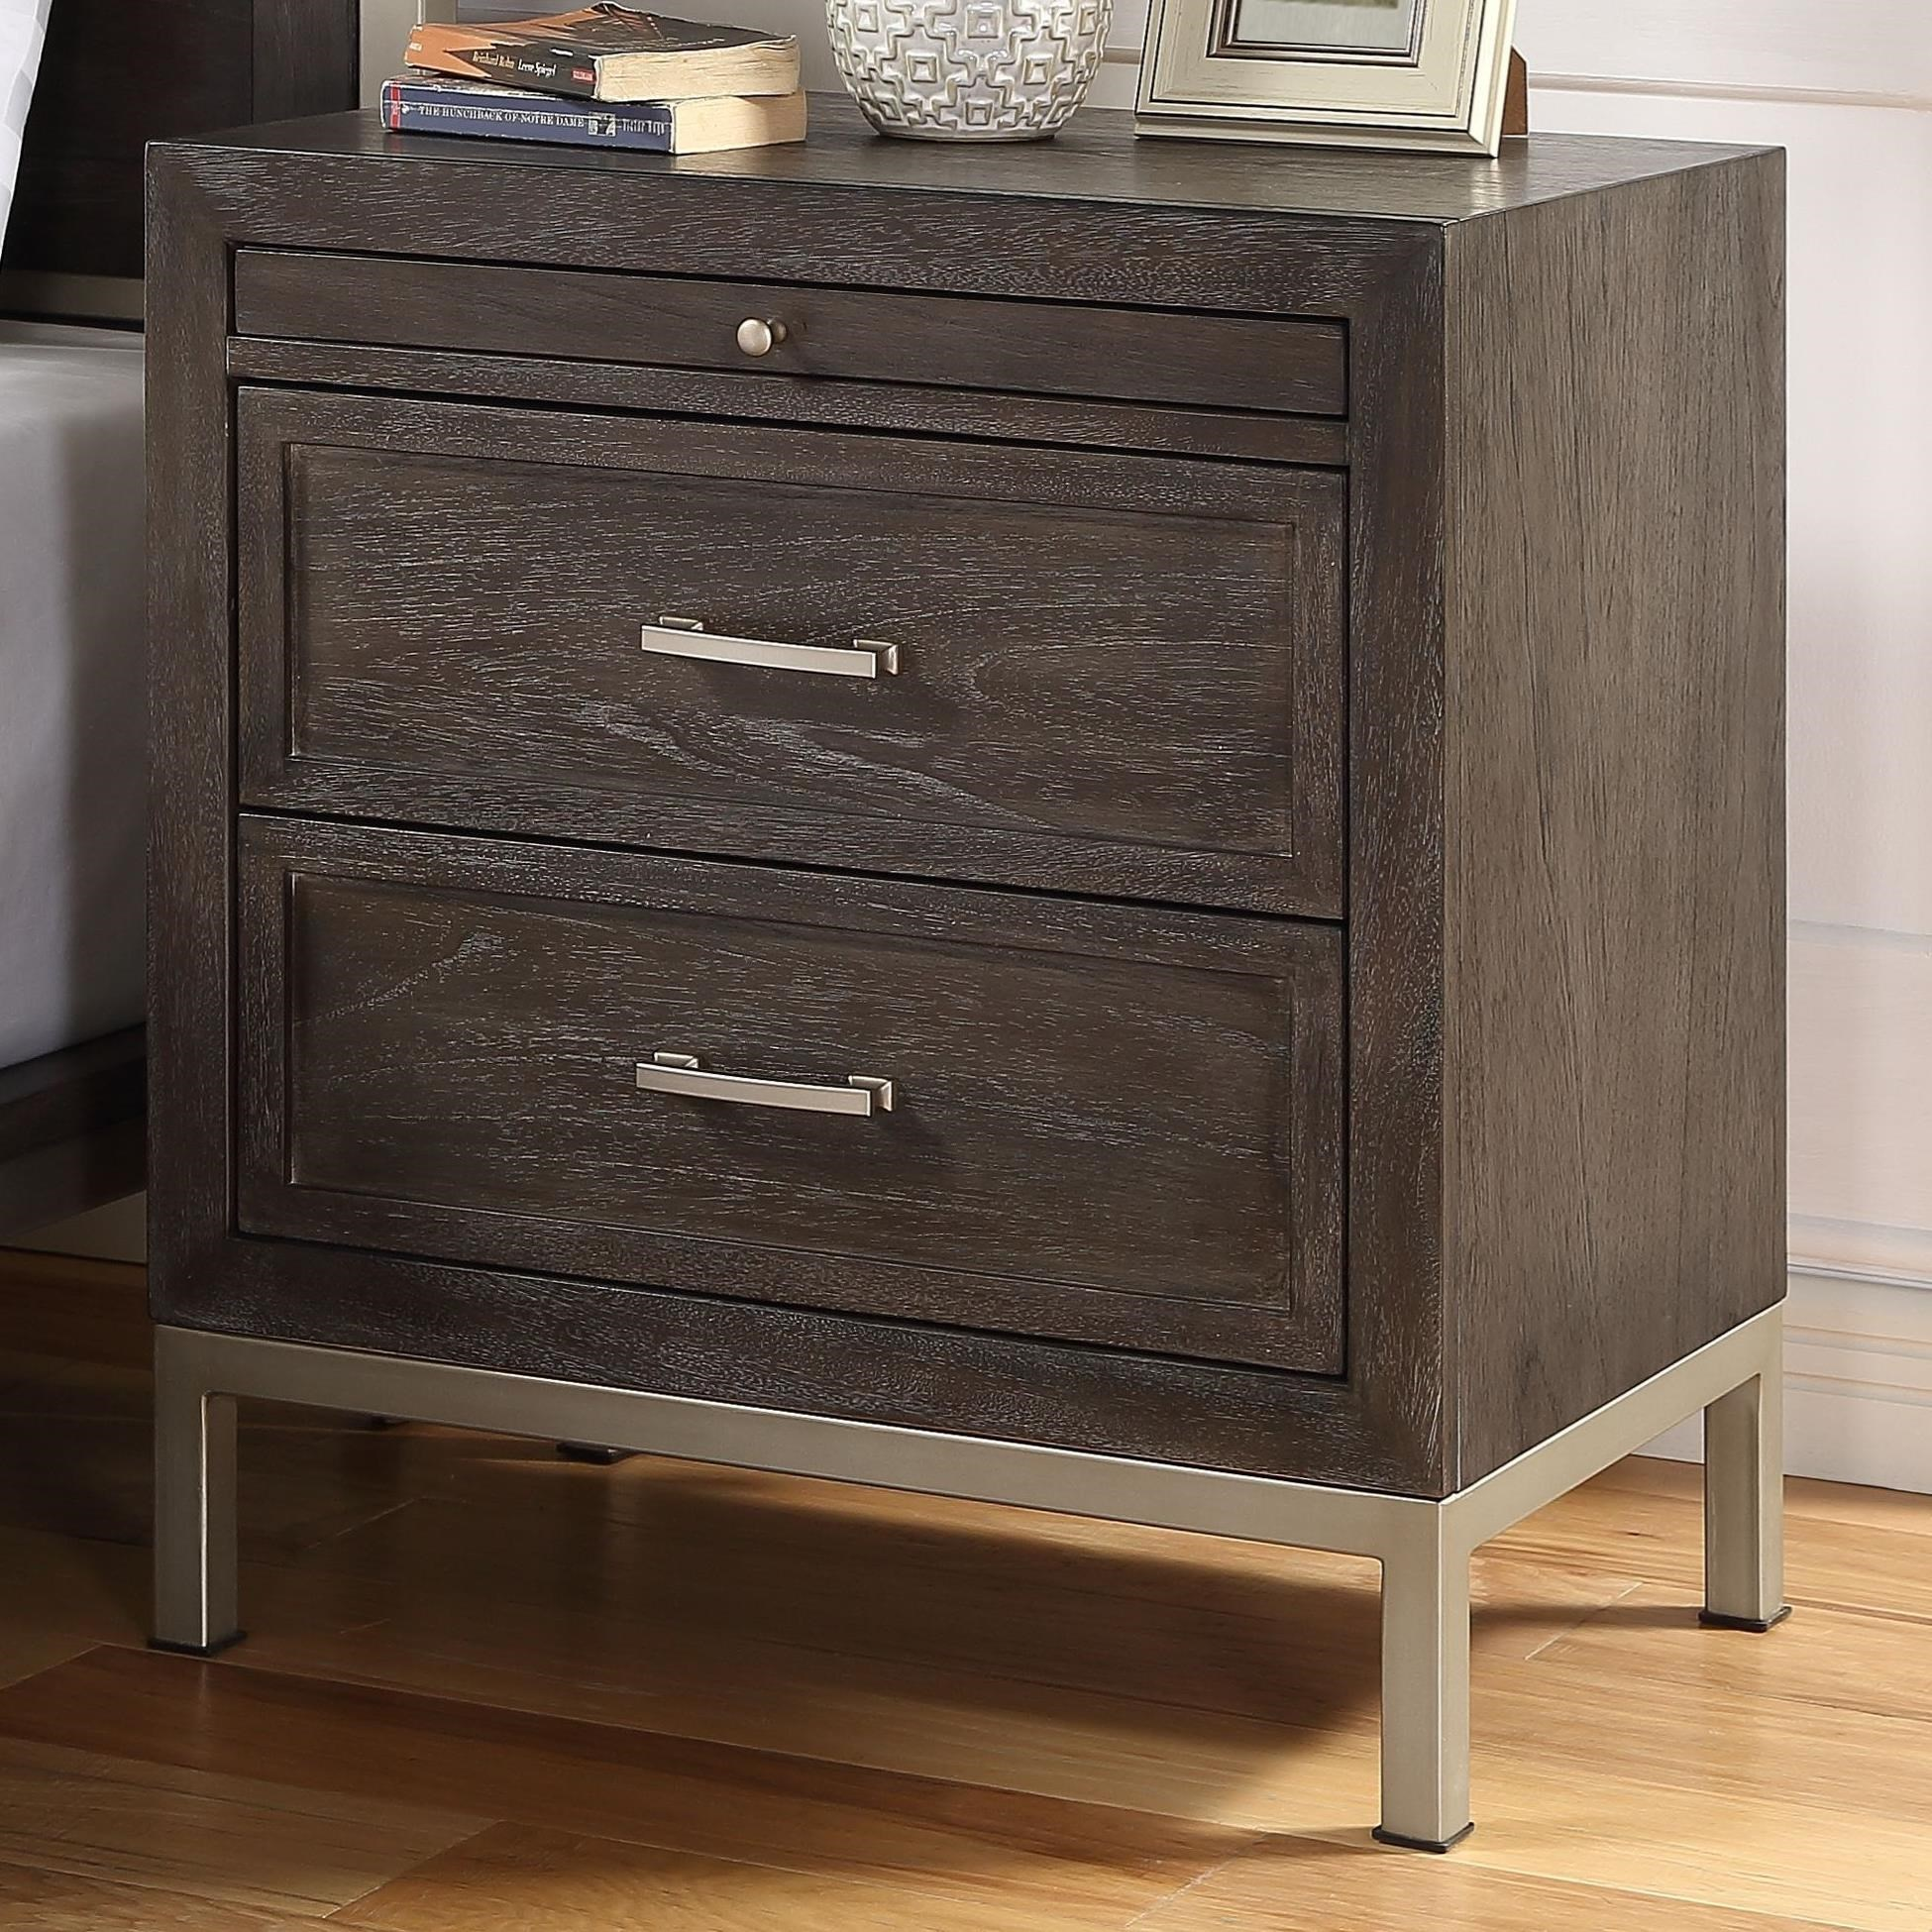 Broomfield Nightstand by Steve Silver at Standard Furniture